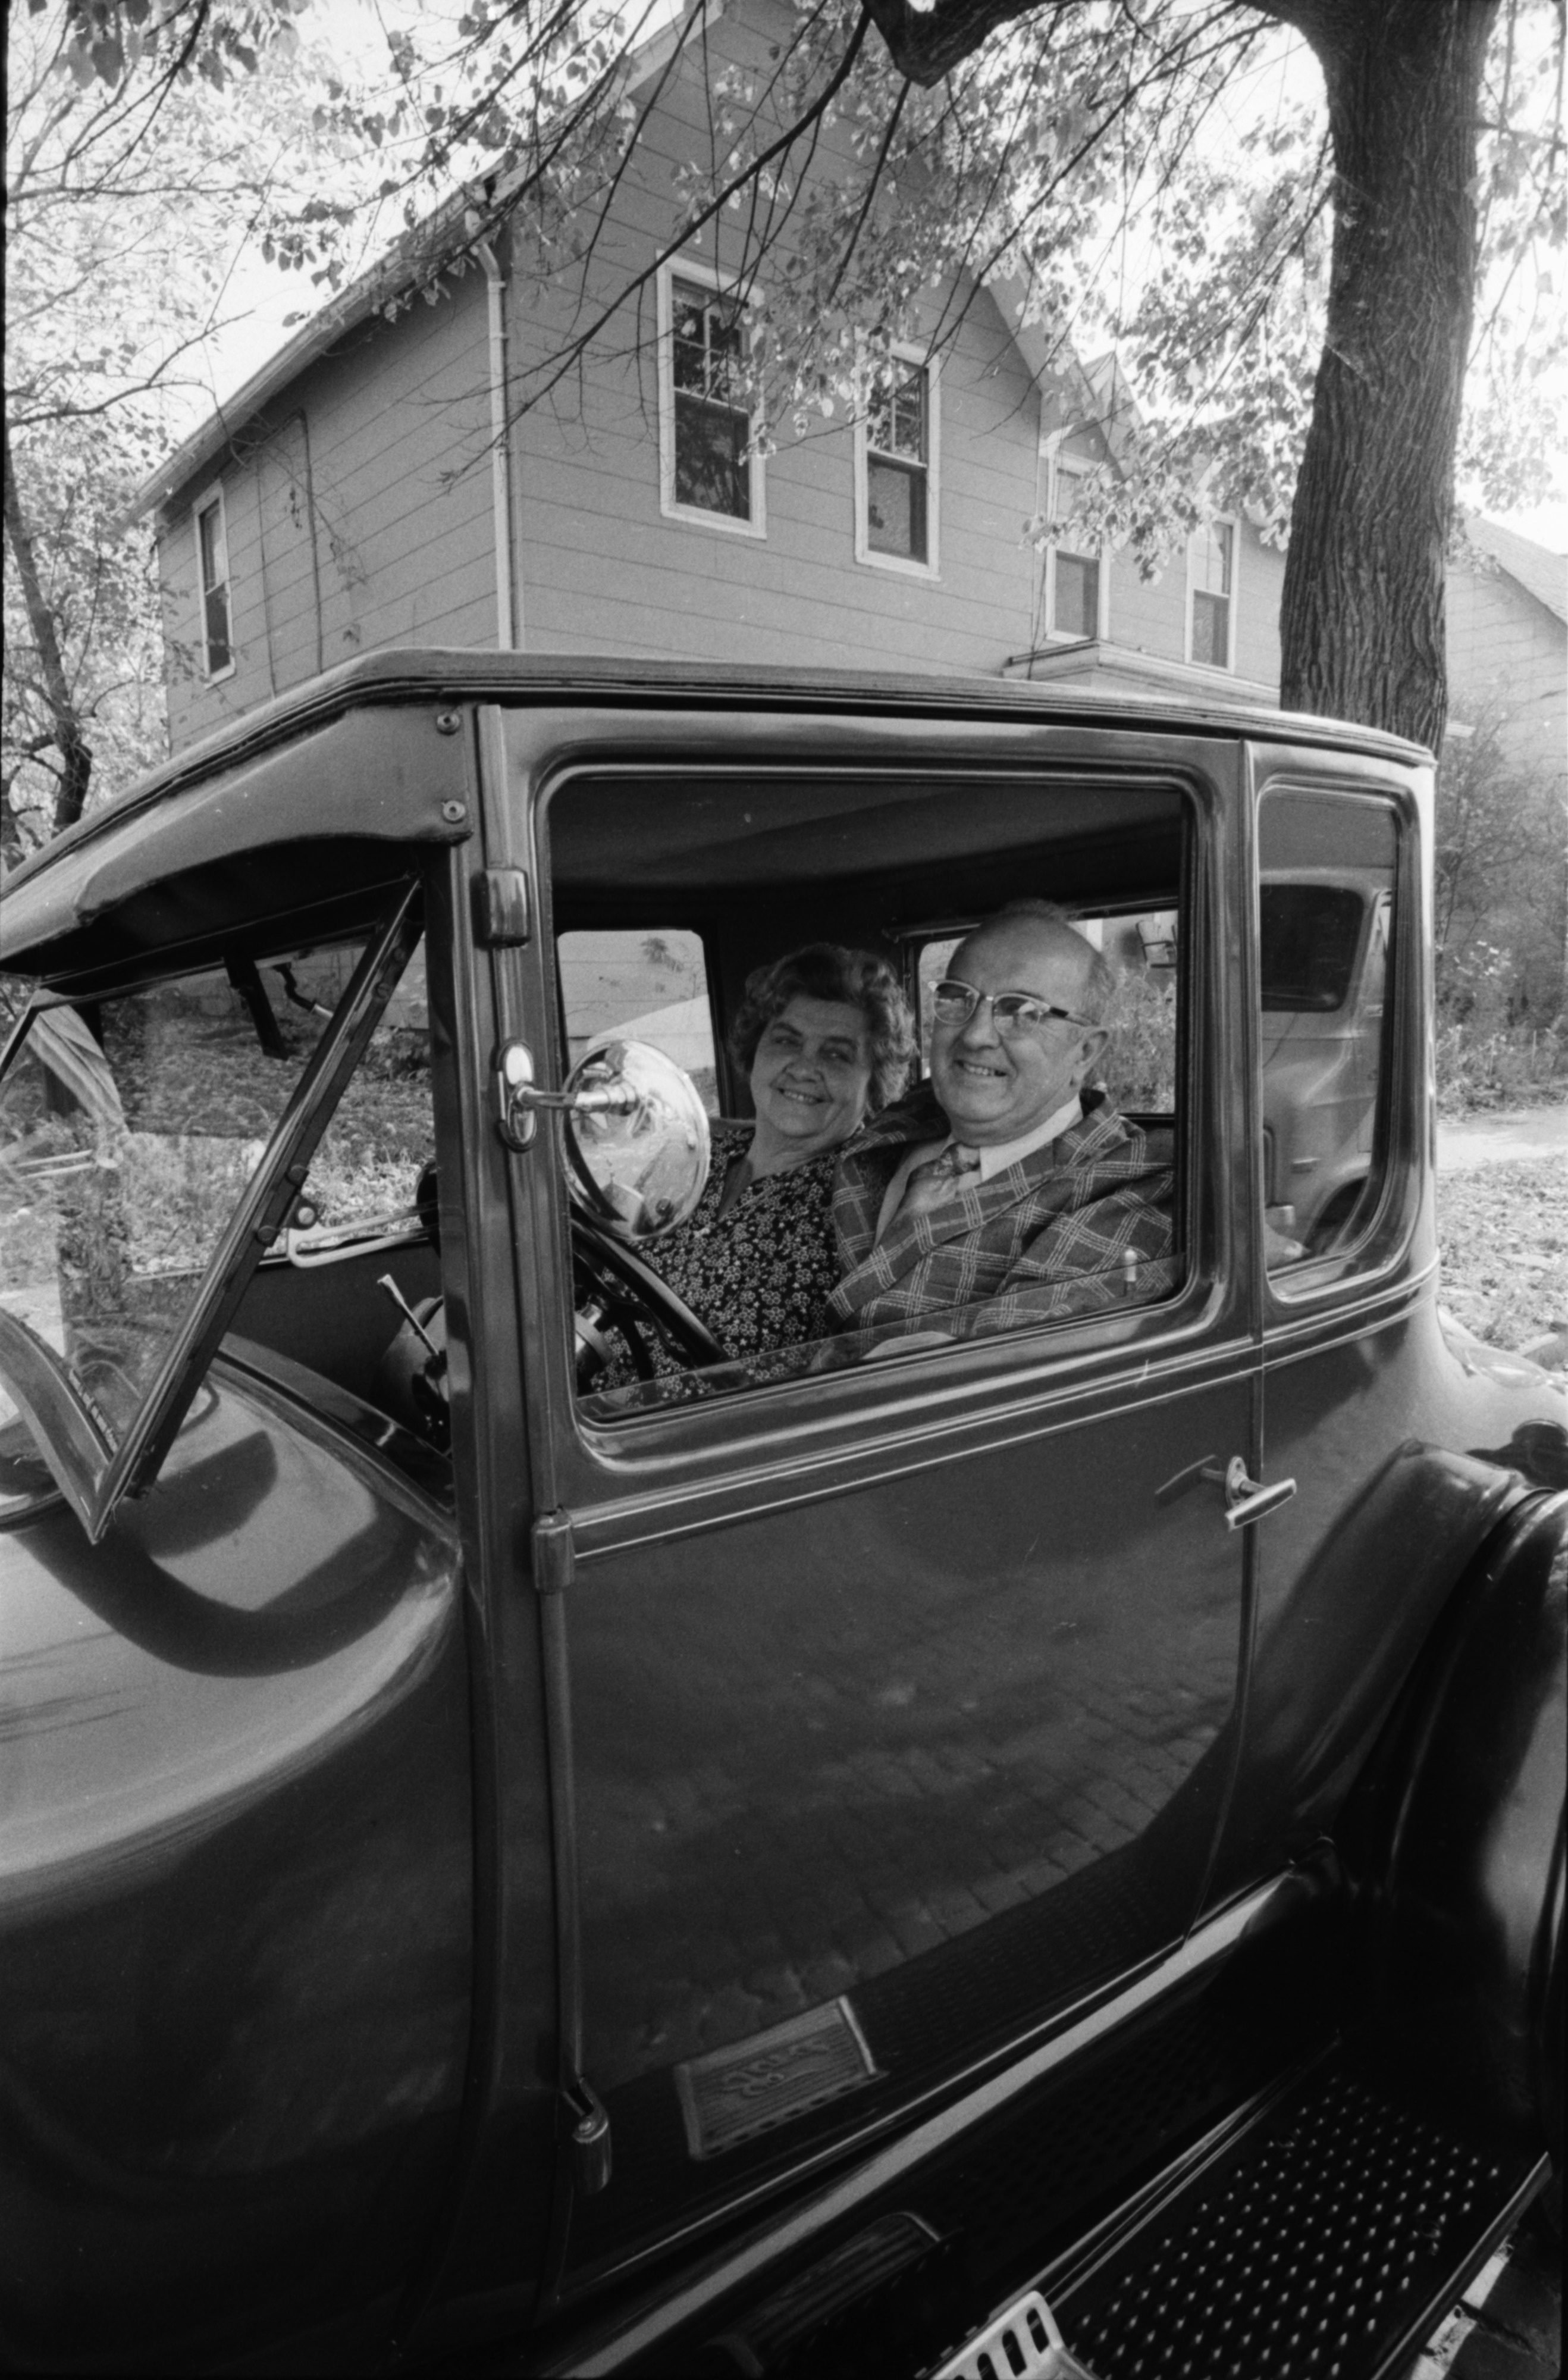 Ray and Bernice Koch in Ford Model T on Detroit Street, October 1975 image